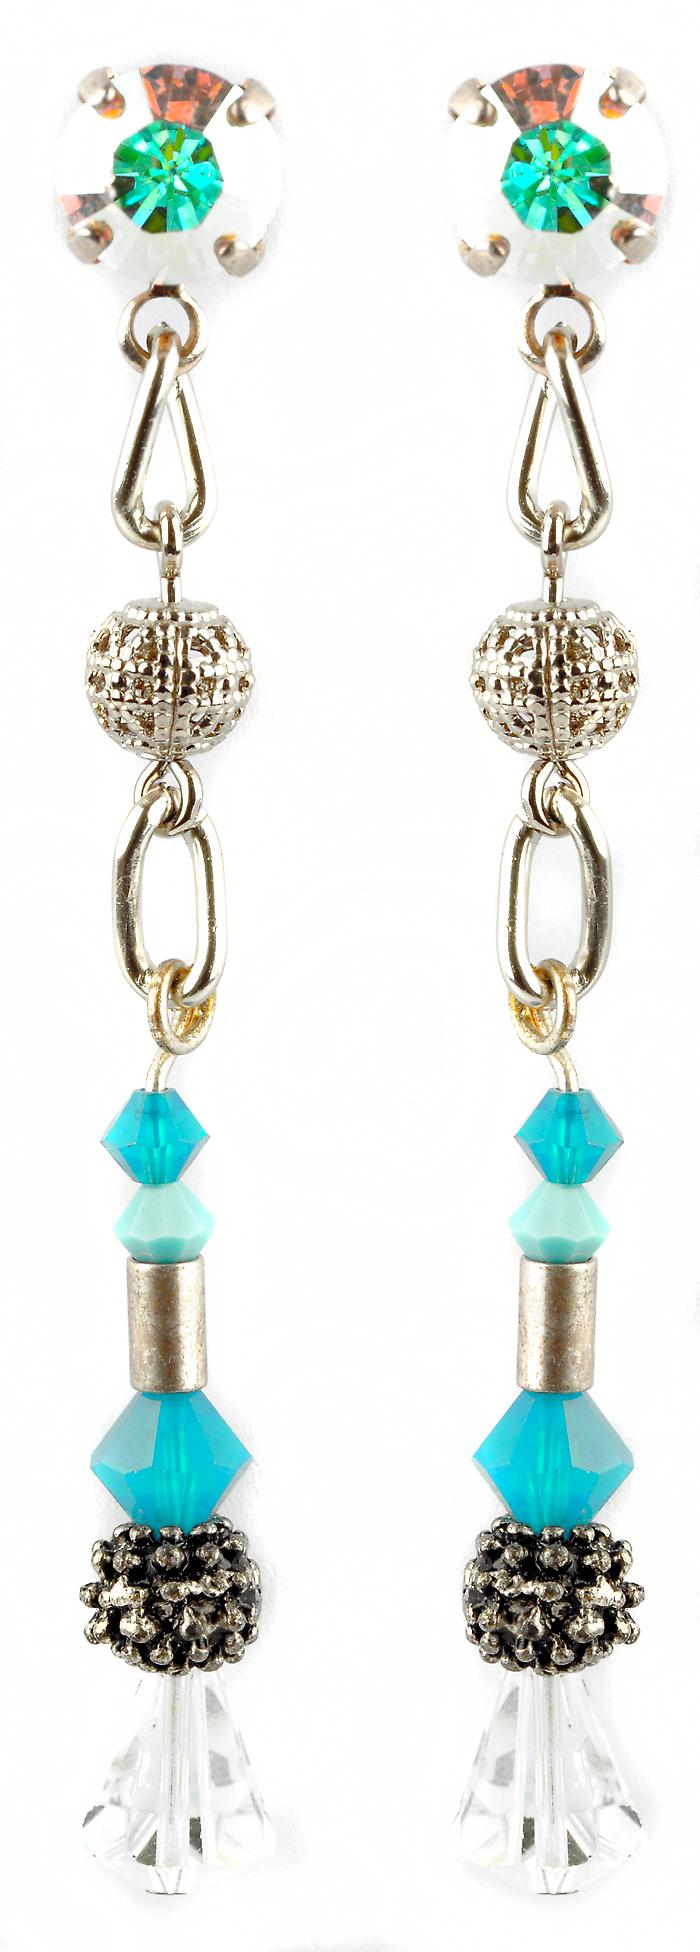 Waooh - Fashion Jewellery - WJ0682 - Earrings Earrings with Swarovski Strass & Pierre White - Metal Antique Silver